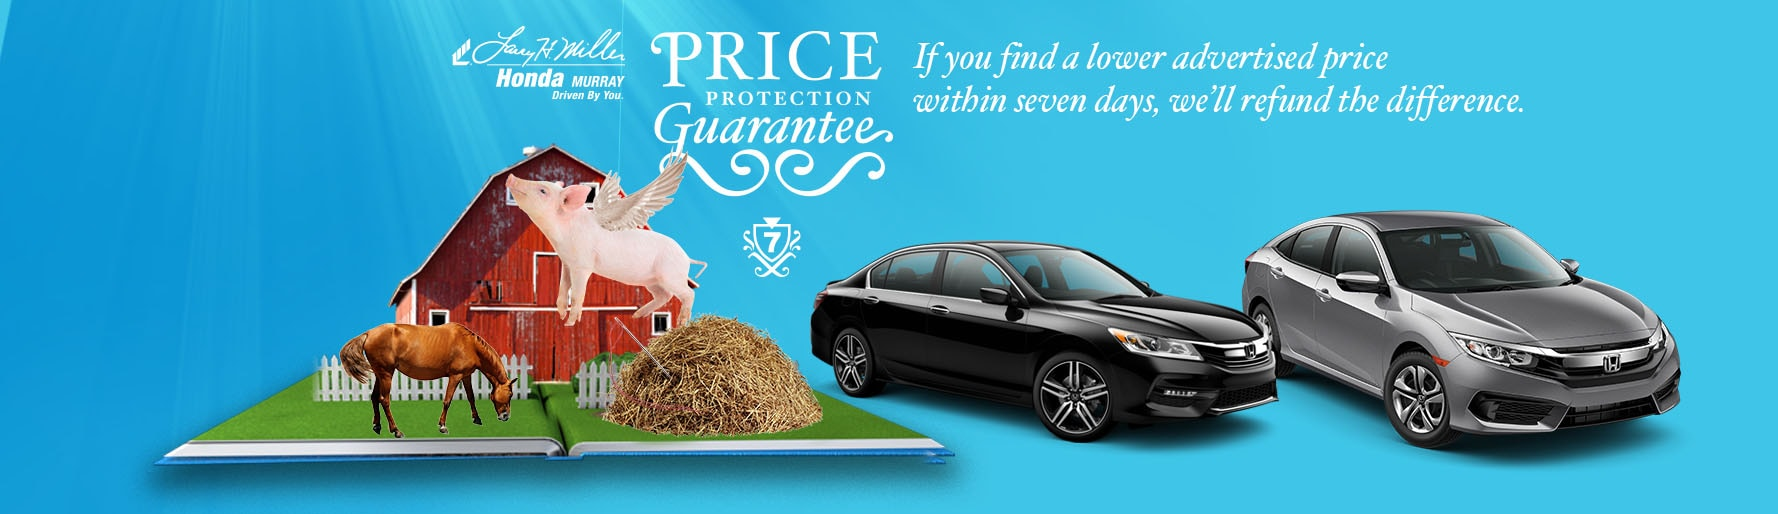 Lowest Price Honda Murray